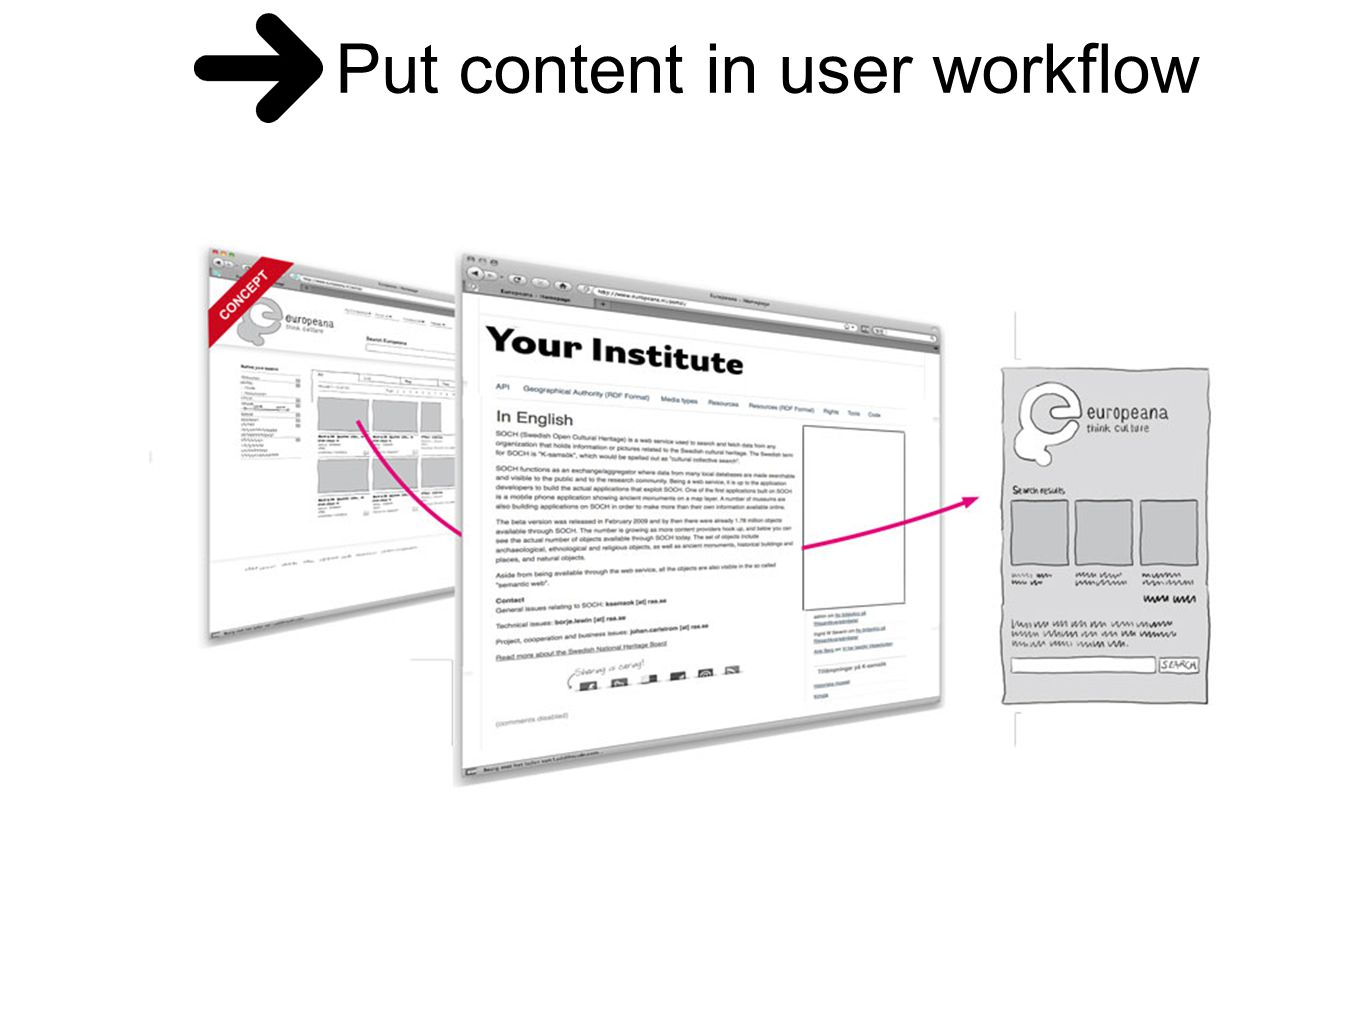 Put content in user workflow